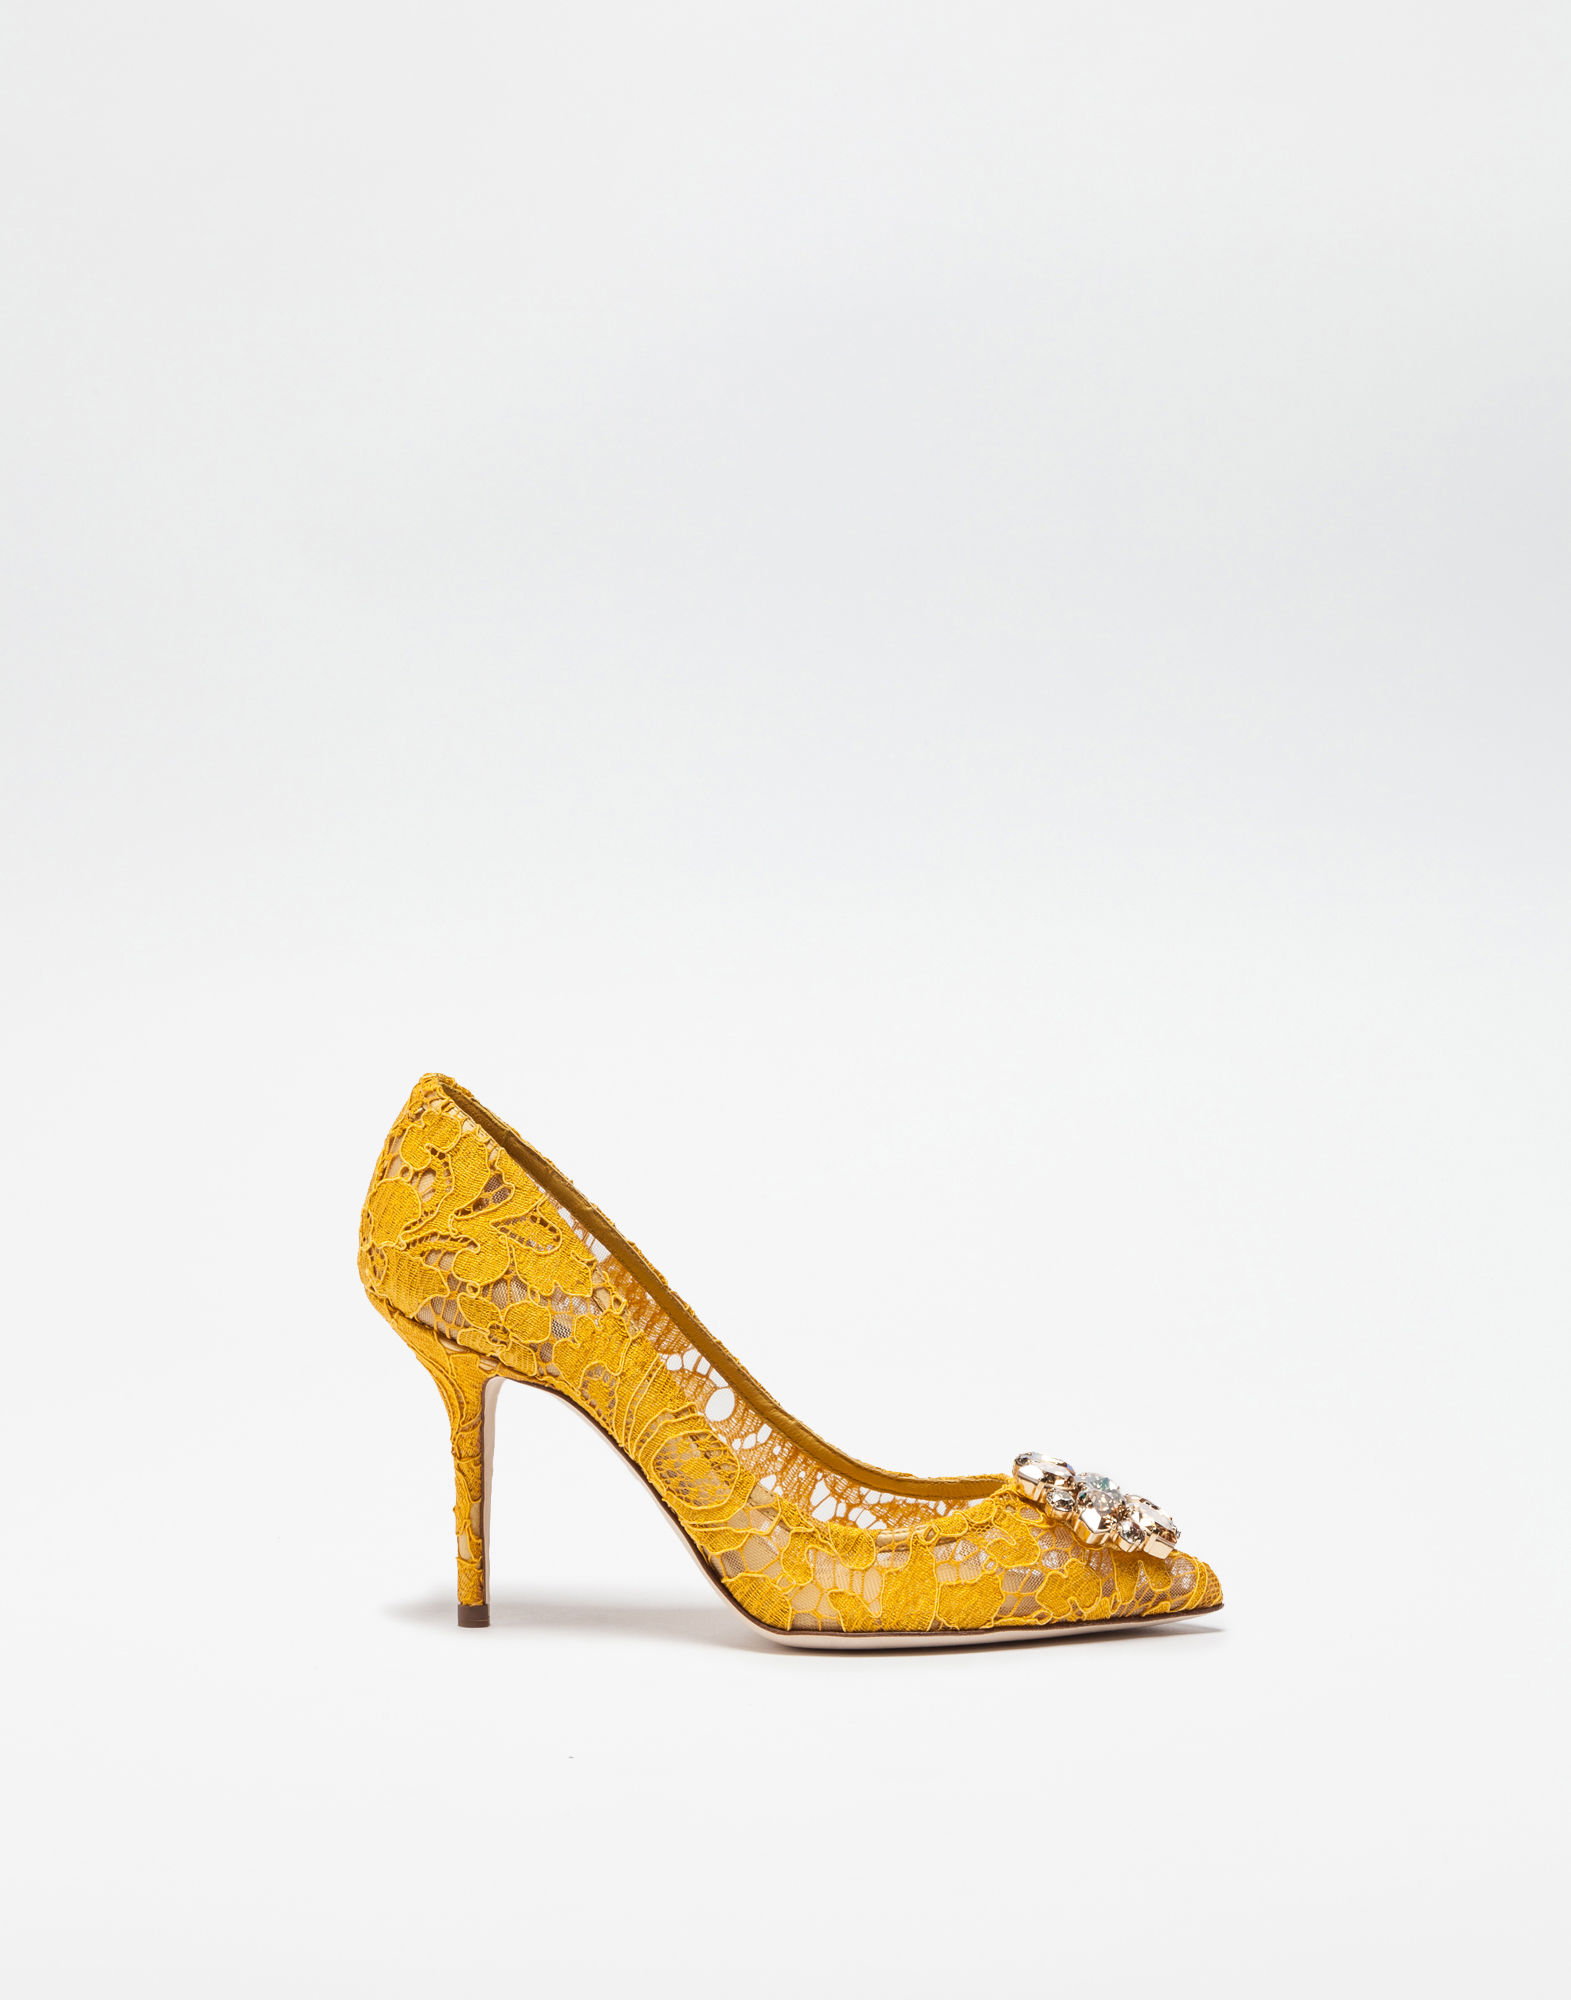 d95eb41a Dolce & Gabbana Belluci Crystal-Embellished Lace Pumps In Yellow ...